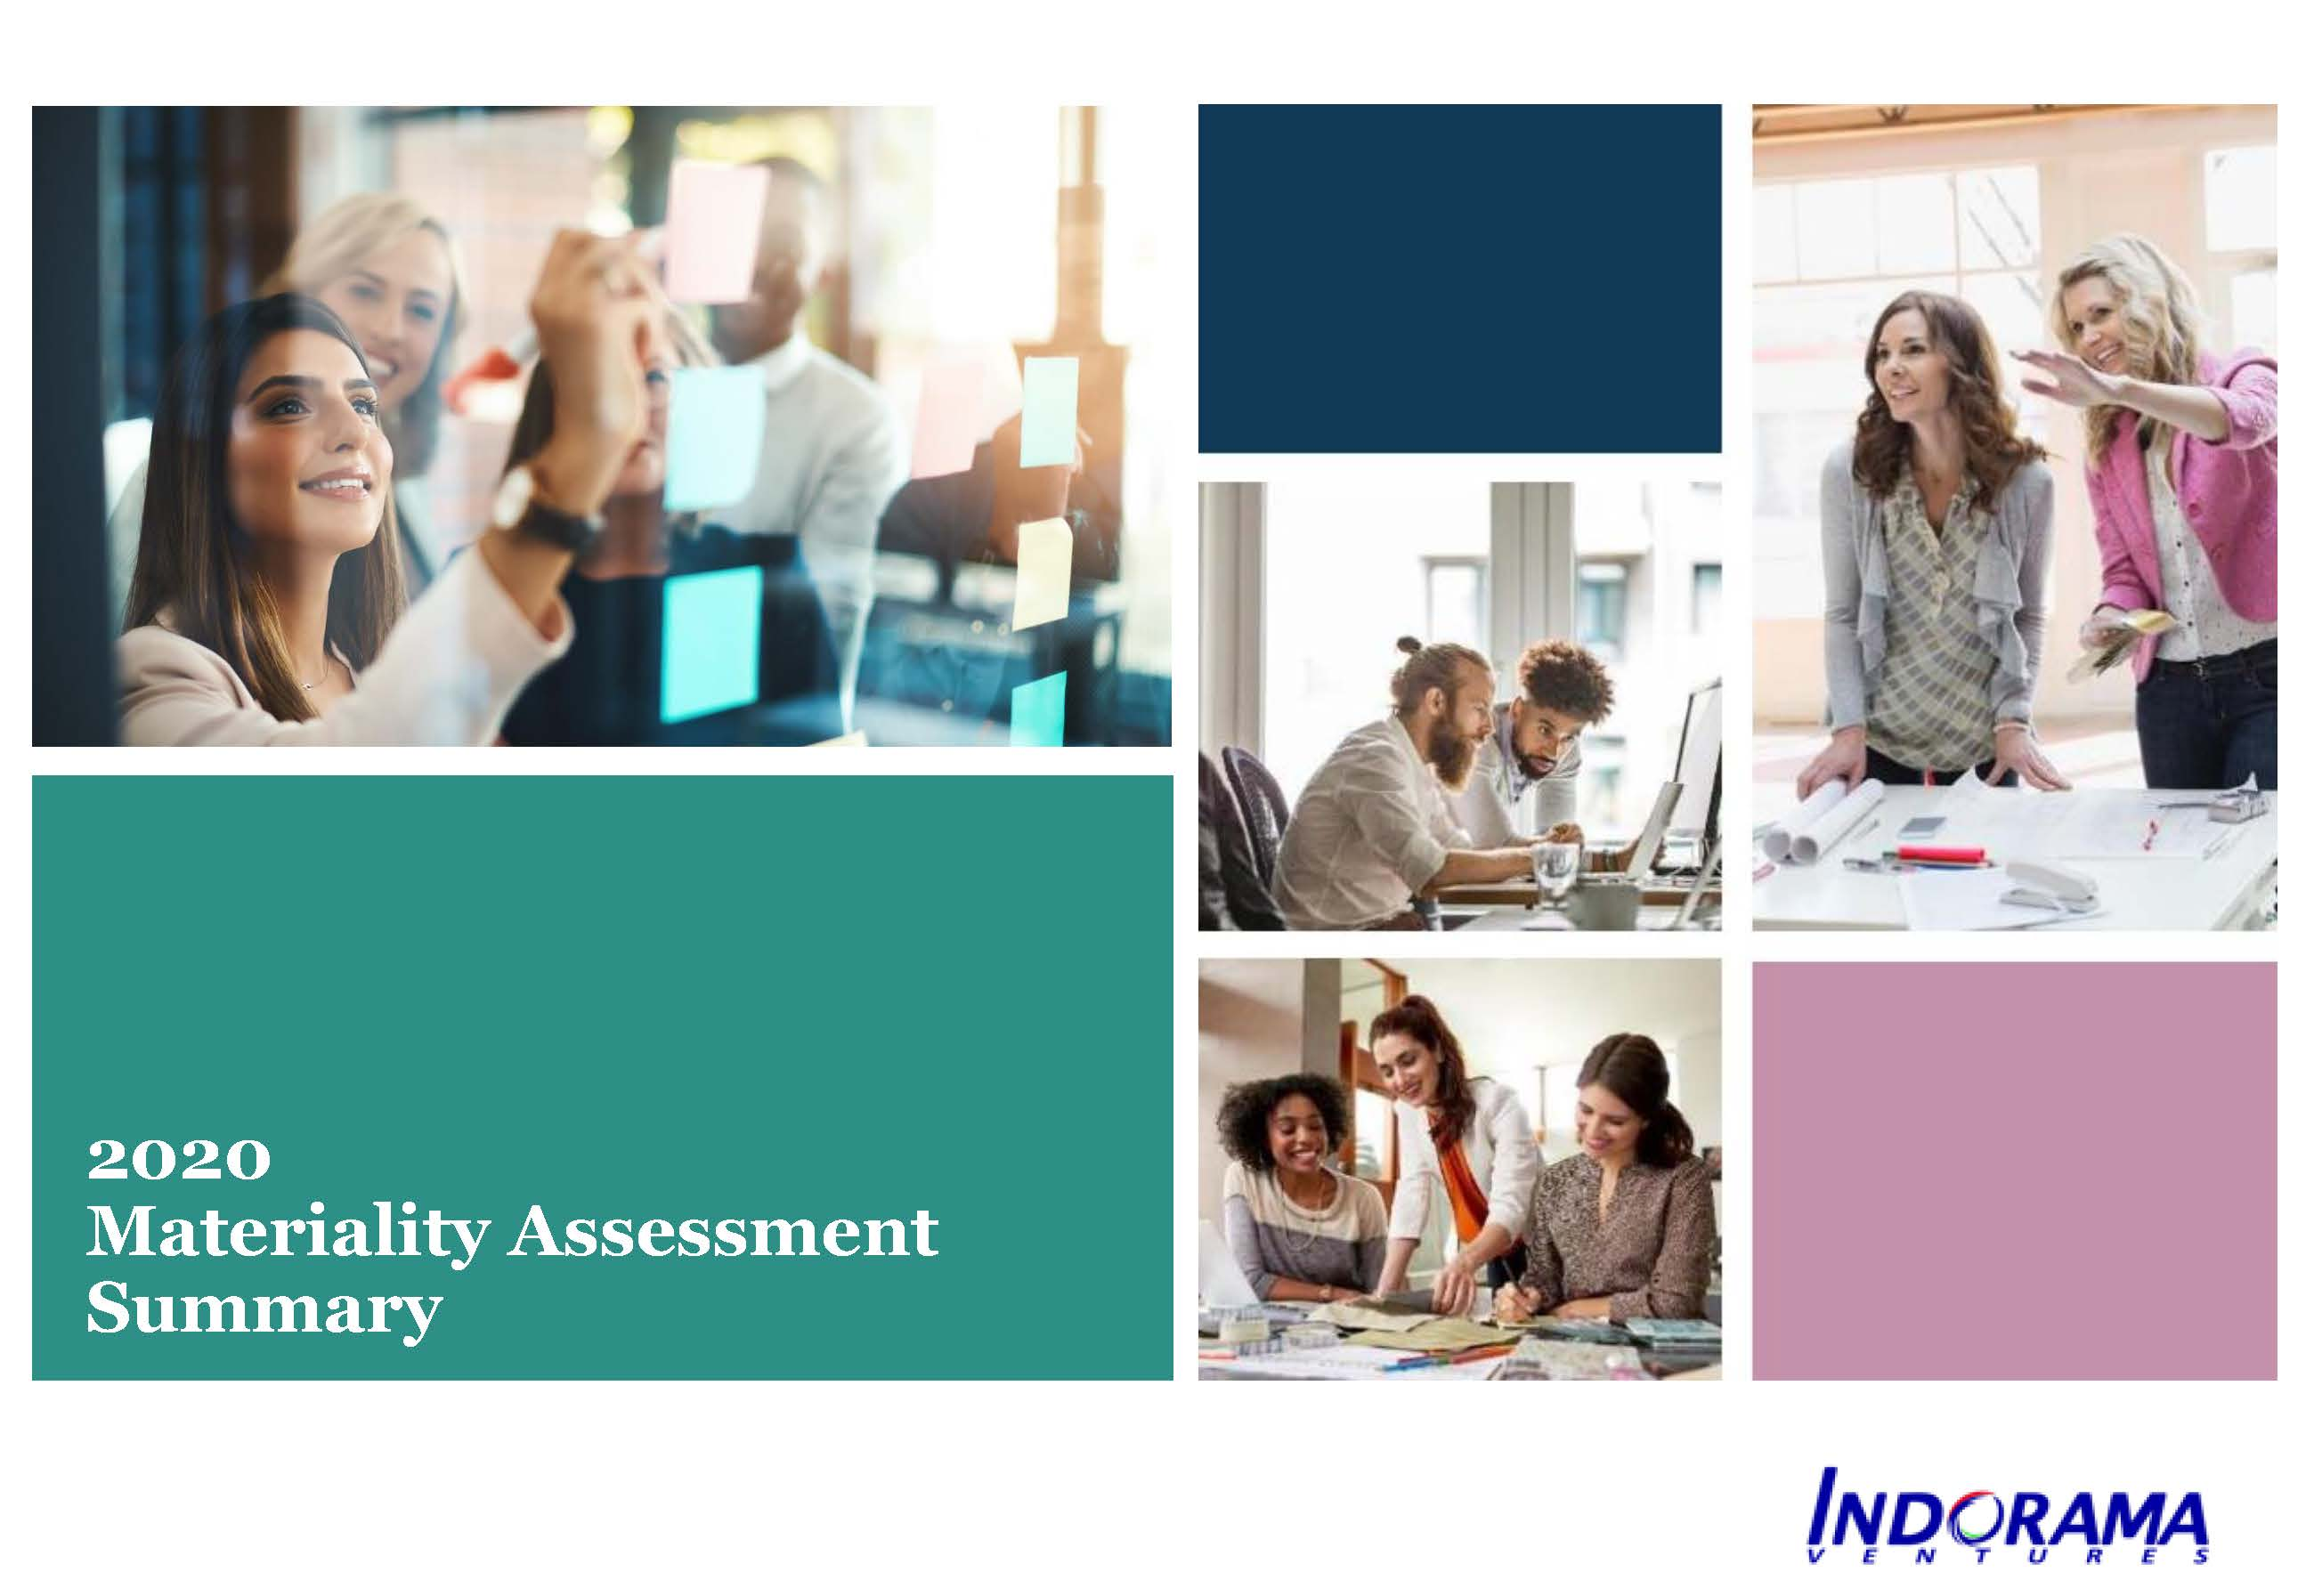 Materiality Assessment Summary 2020